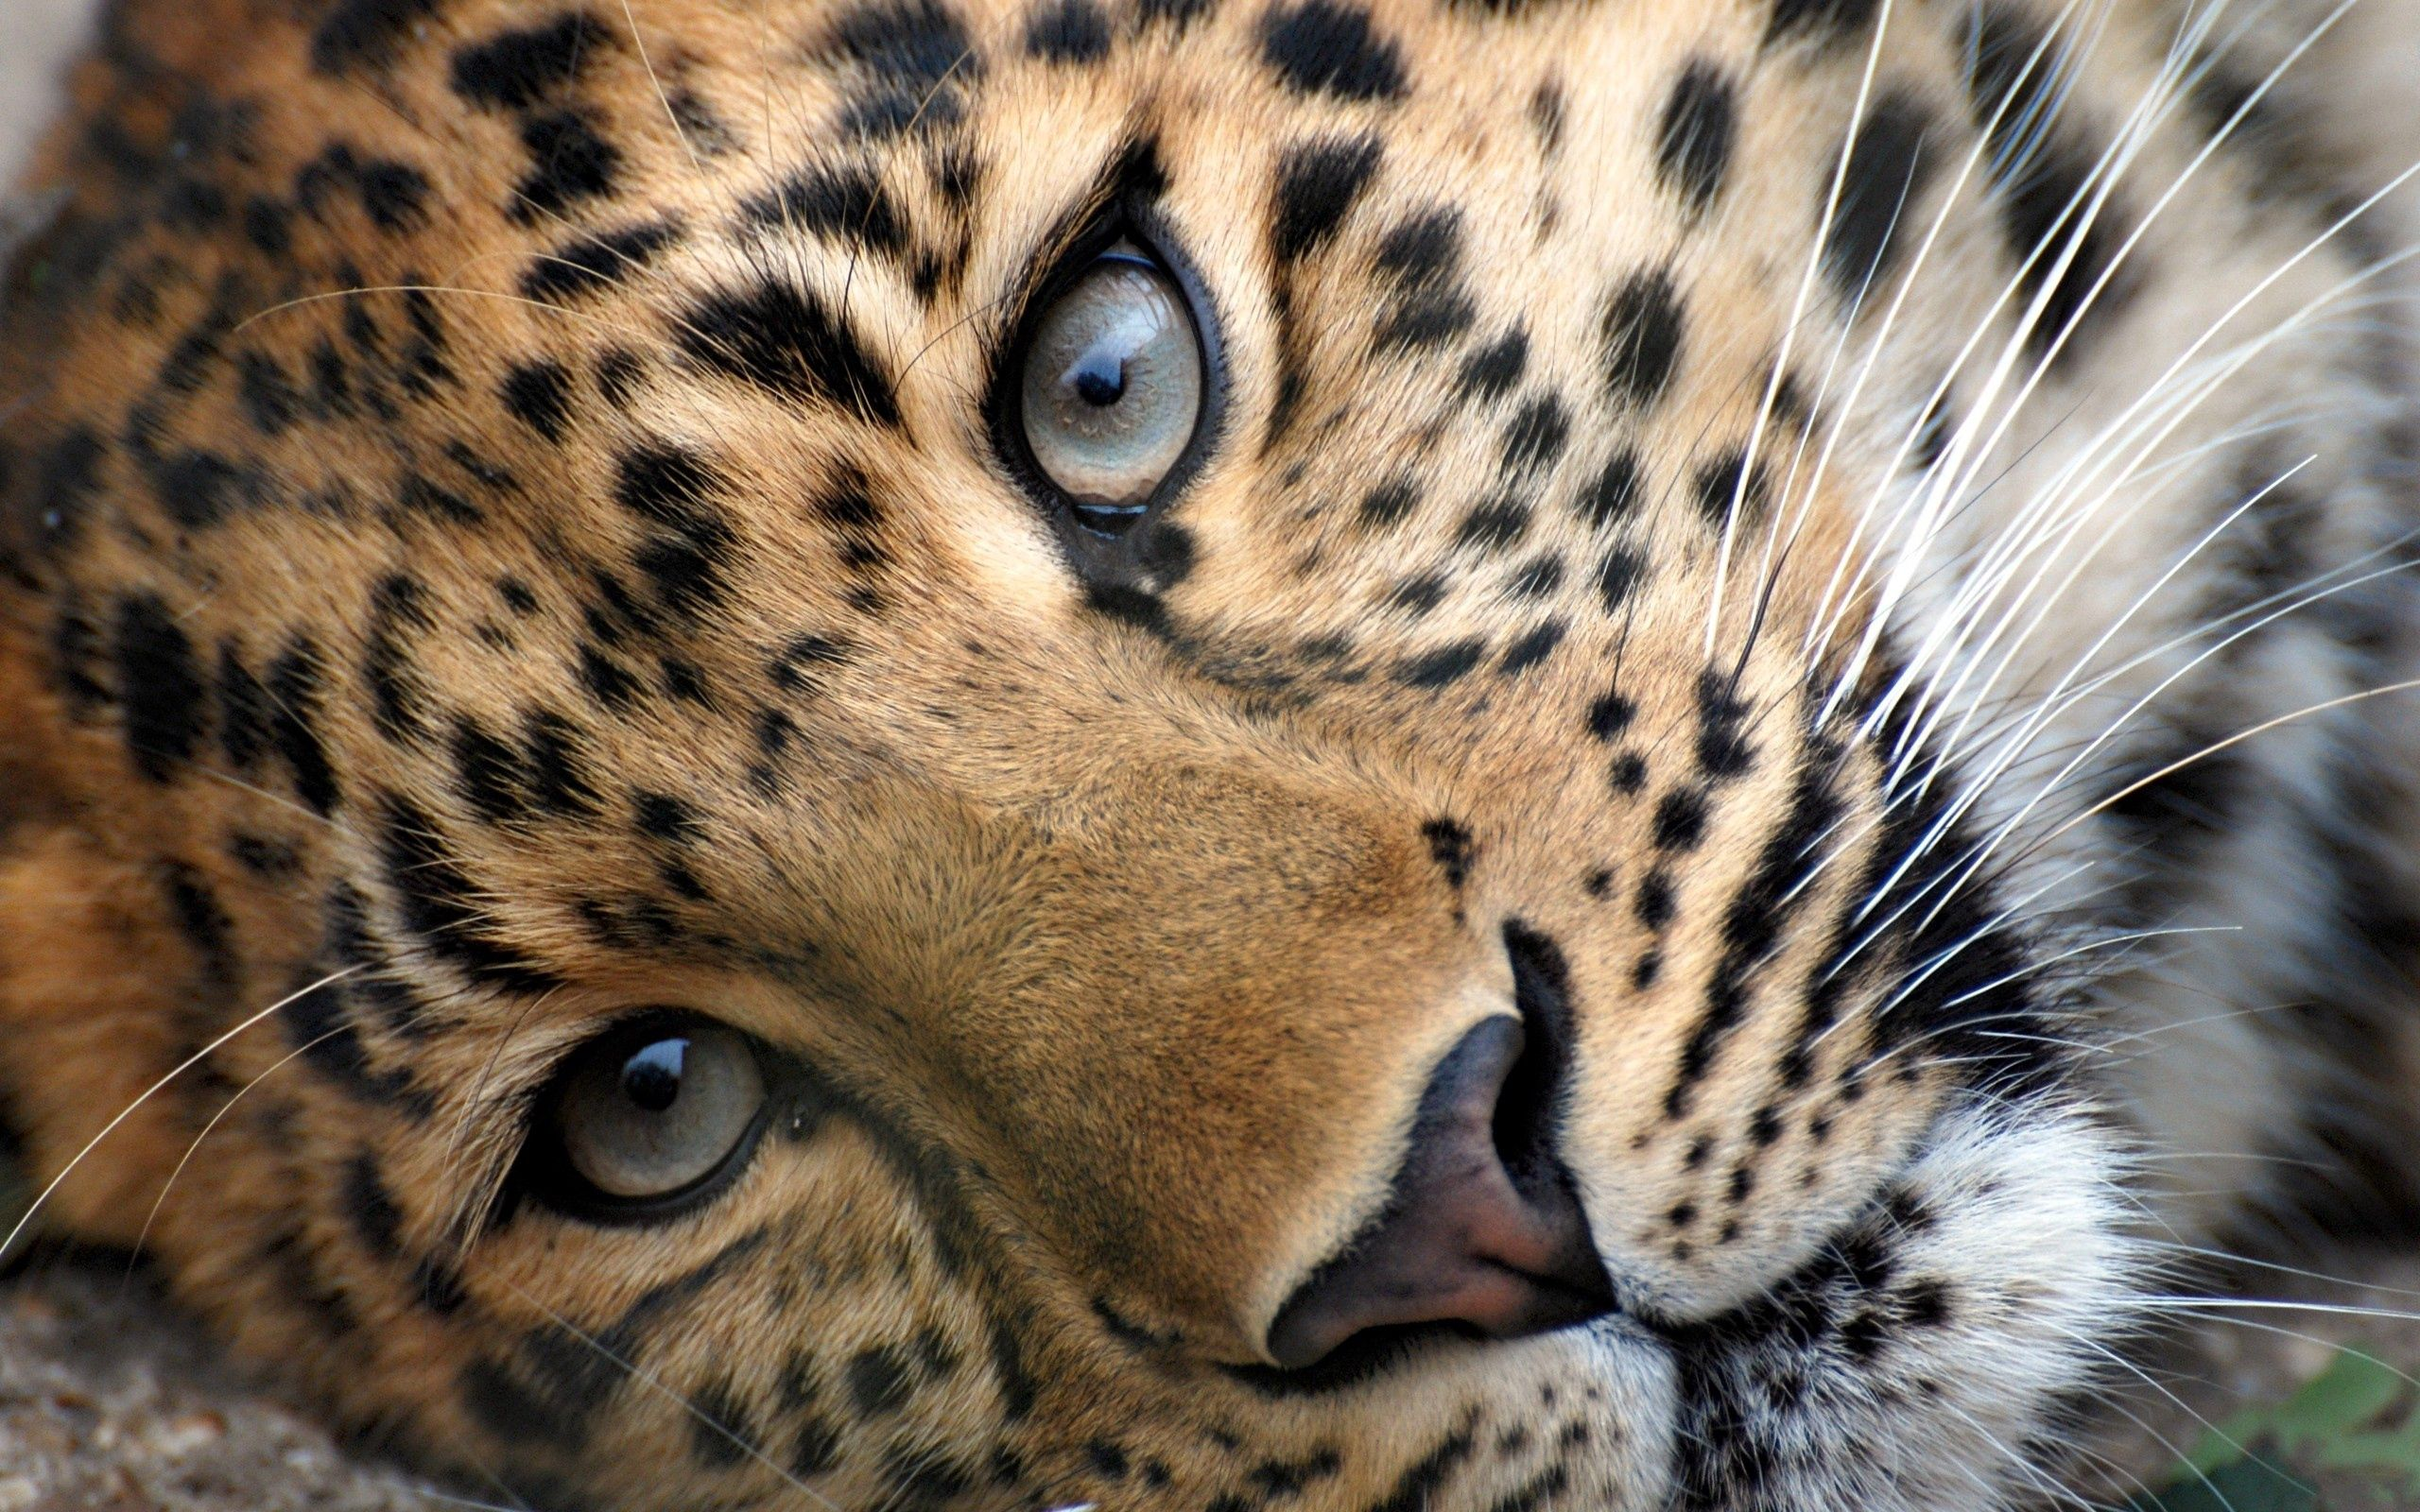 86154 download wallpaper Animals, Leopard, Muzzle, Eyes, Relaxation, Rest, Grass, Nice, Sweetheart screensavers and pictures for free